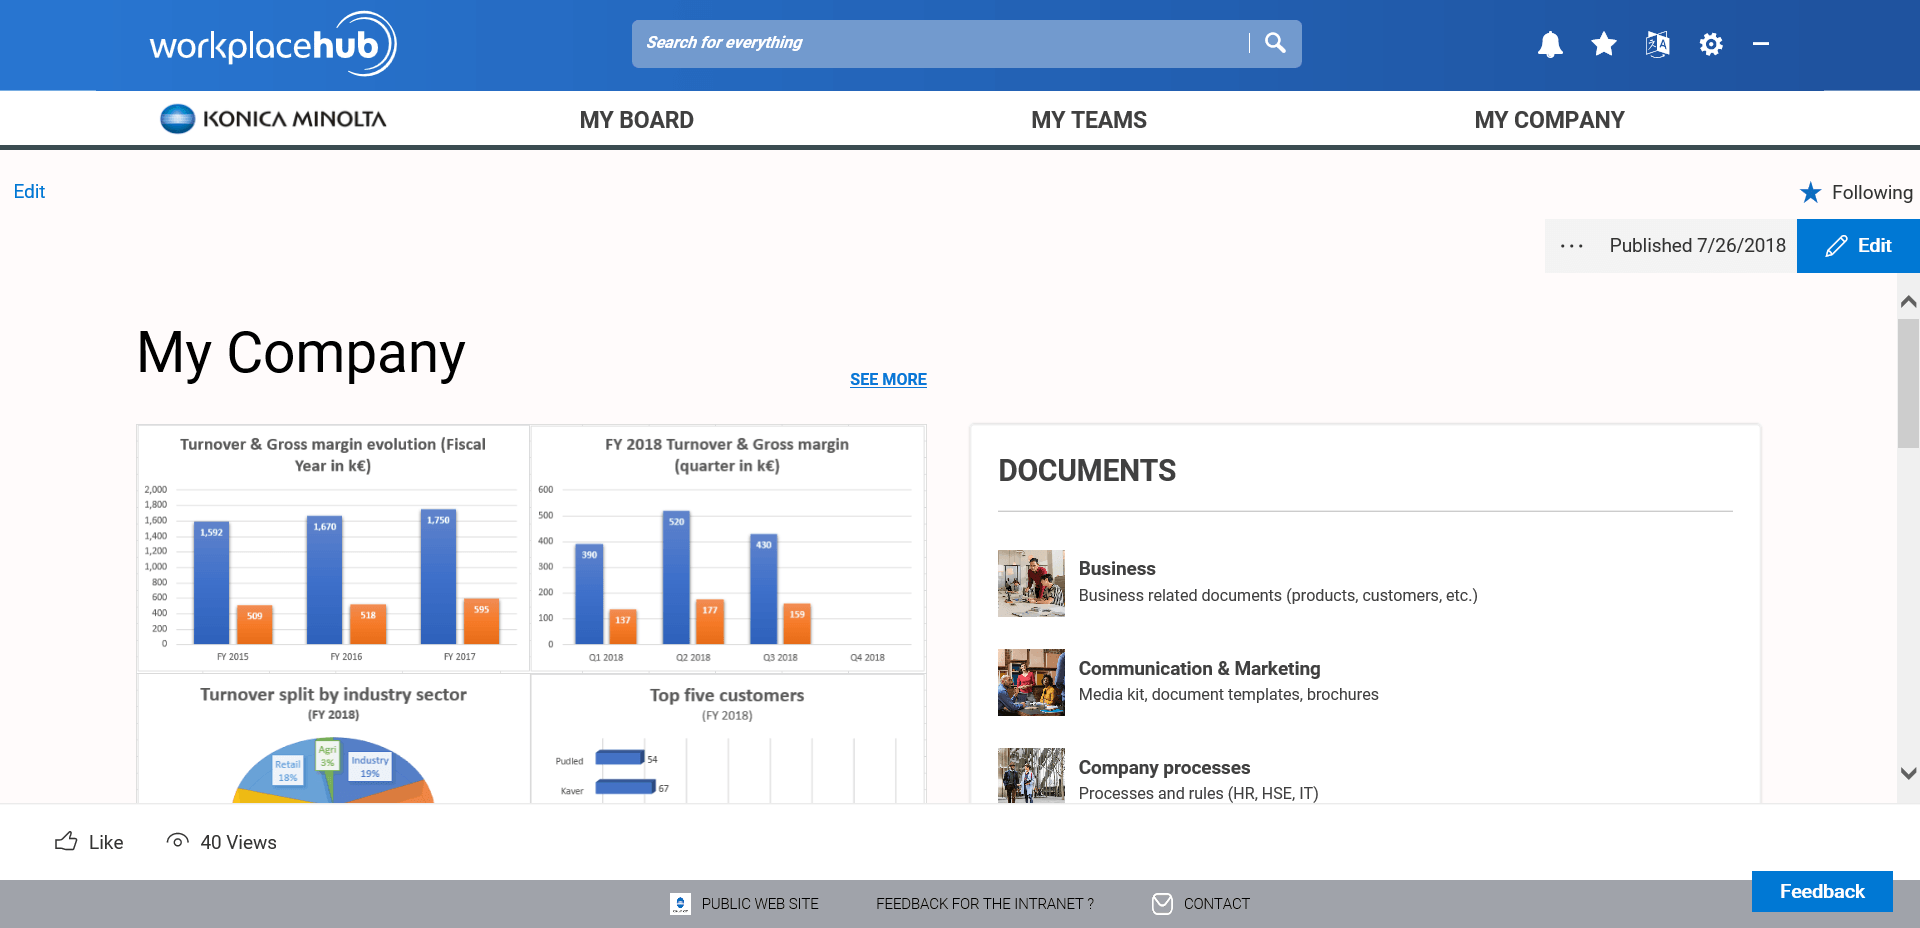 Workplace Hub dashboard